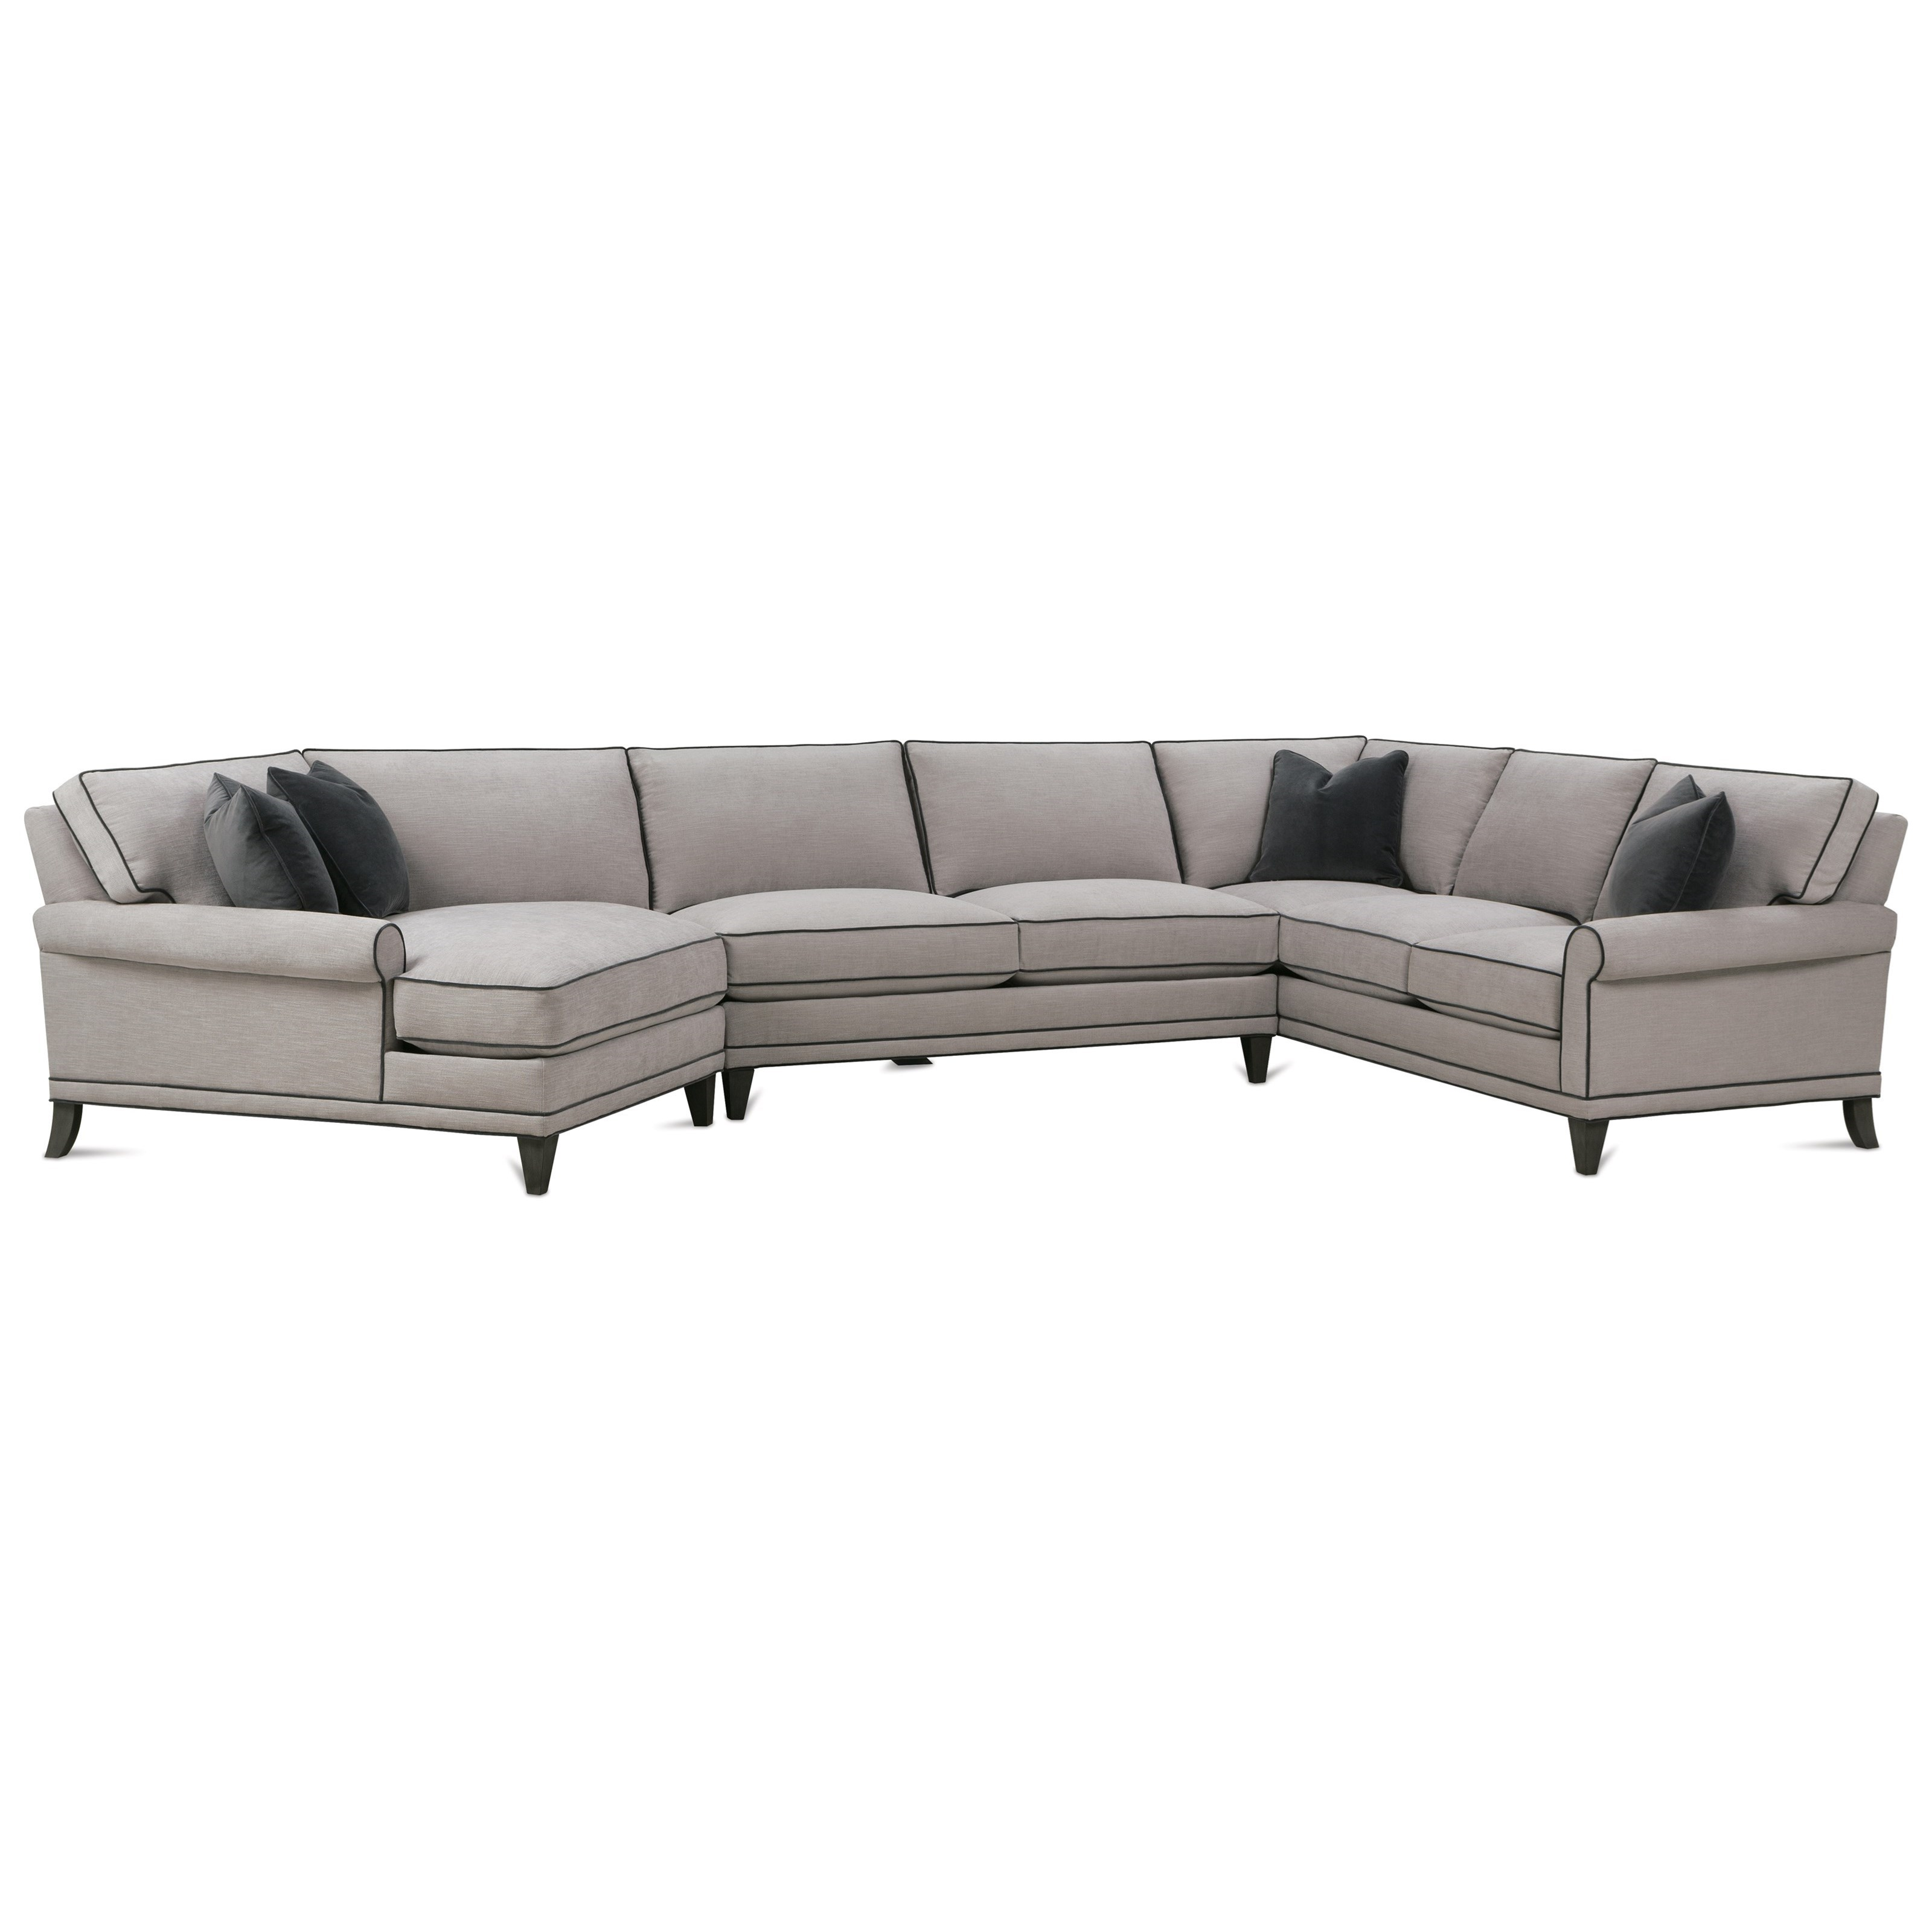 My Style II Customizable Sectional Sofa by Rowe at Steger's Furniture